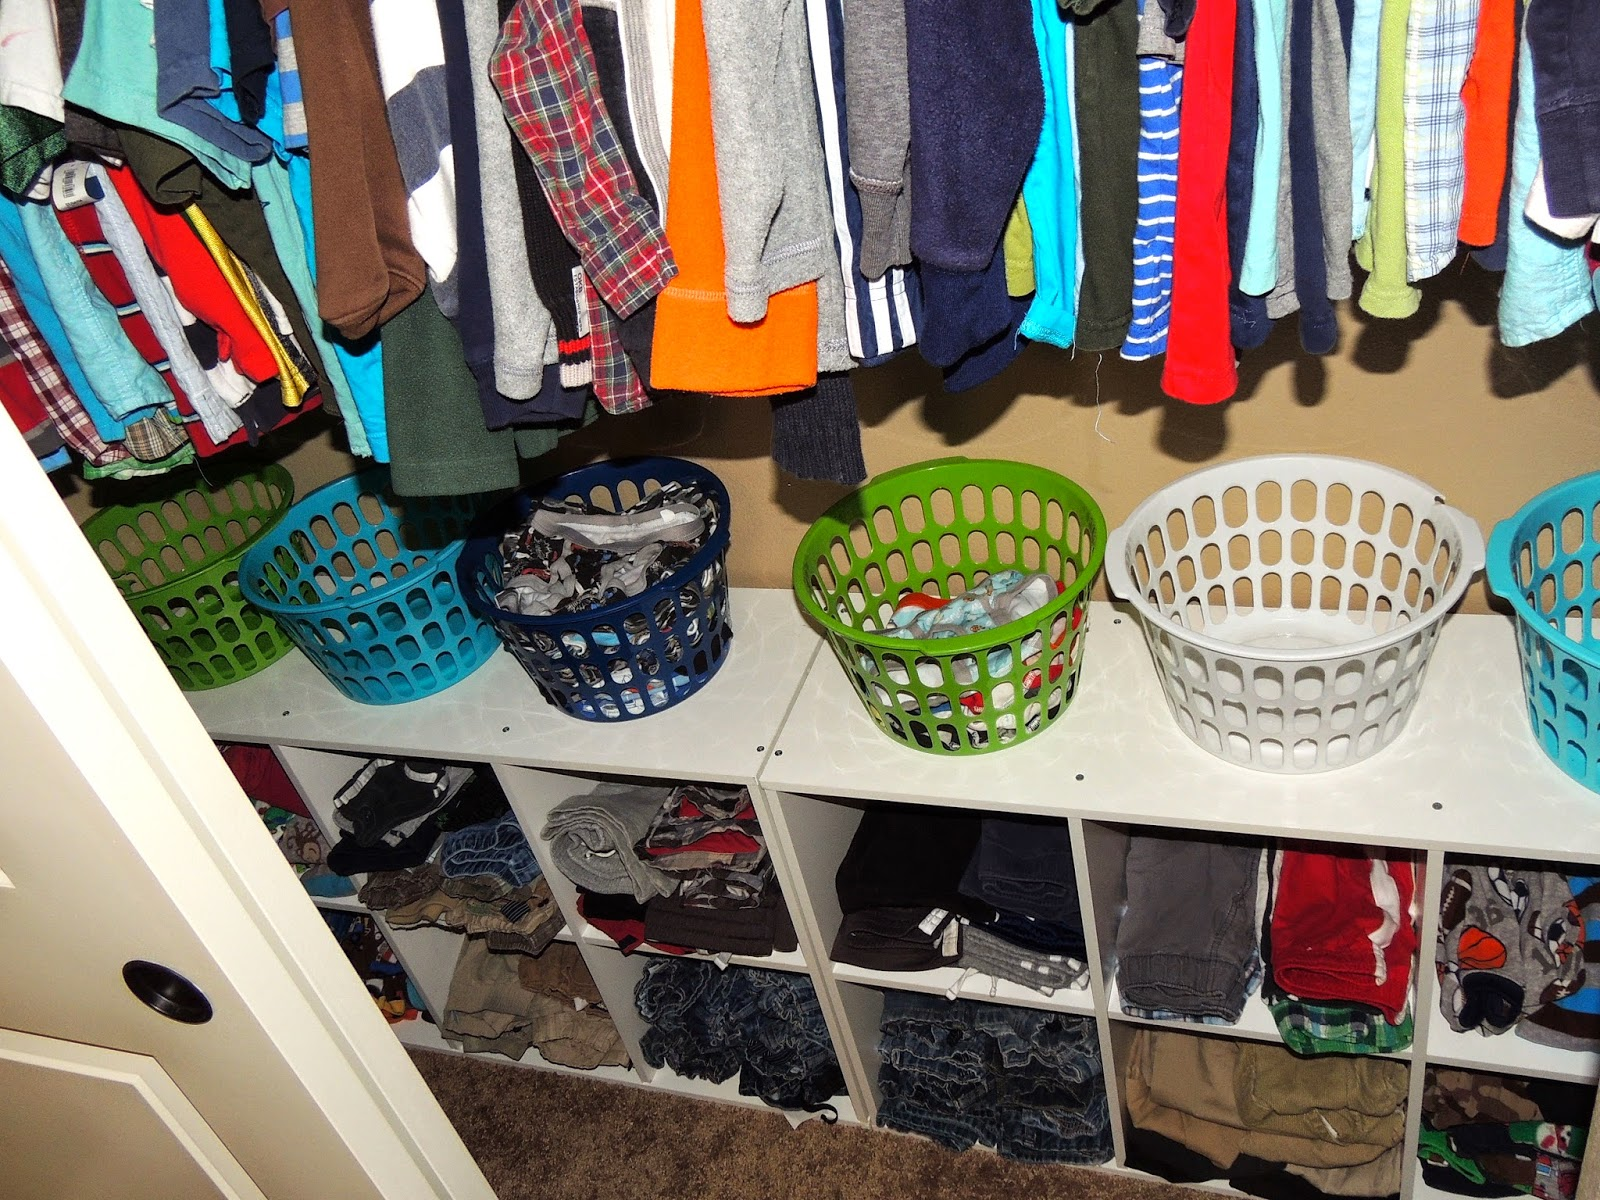 Carrie Dahlin Back To School Closet Organization Pretty Wire Mesh Drawers For Folded Clothes In